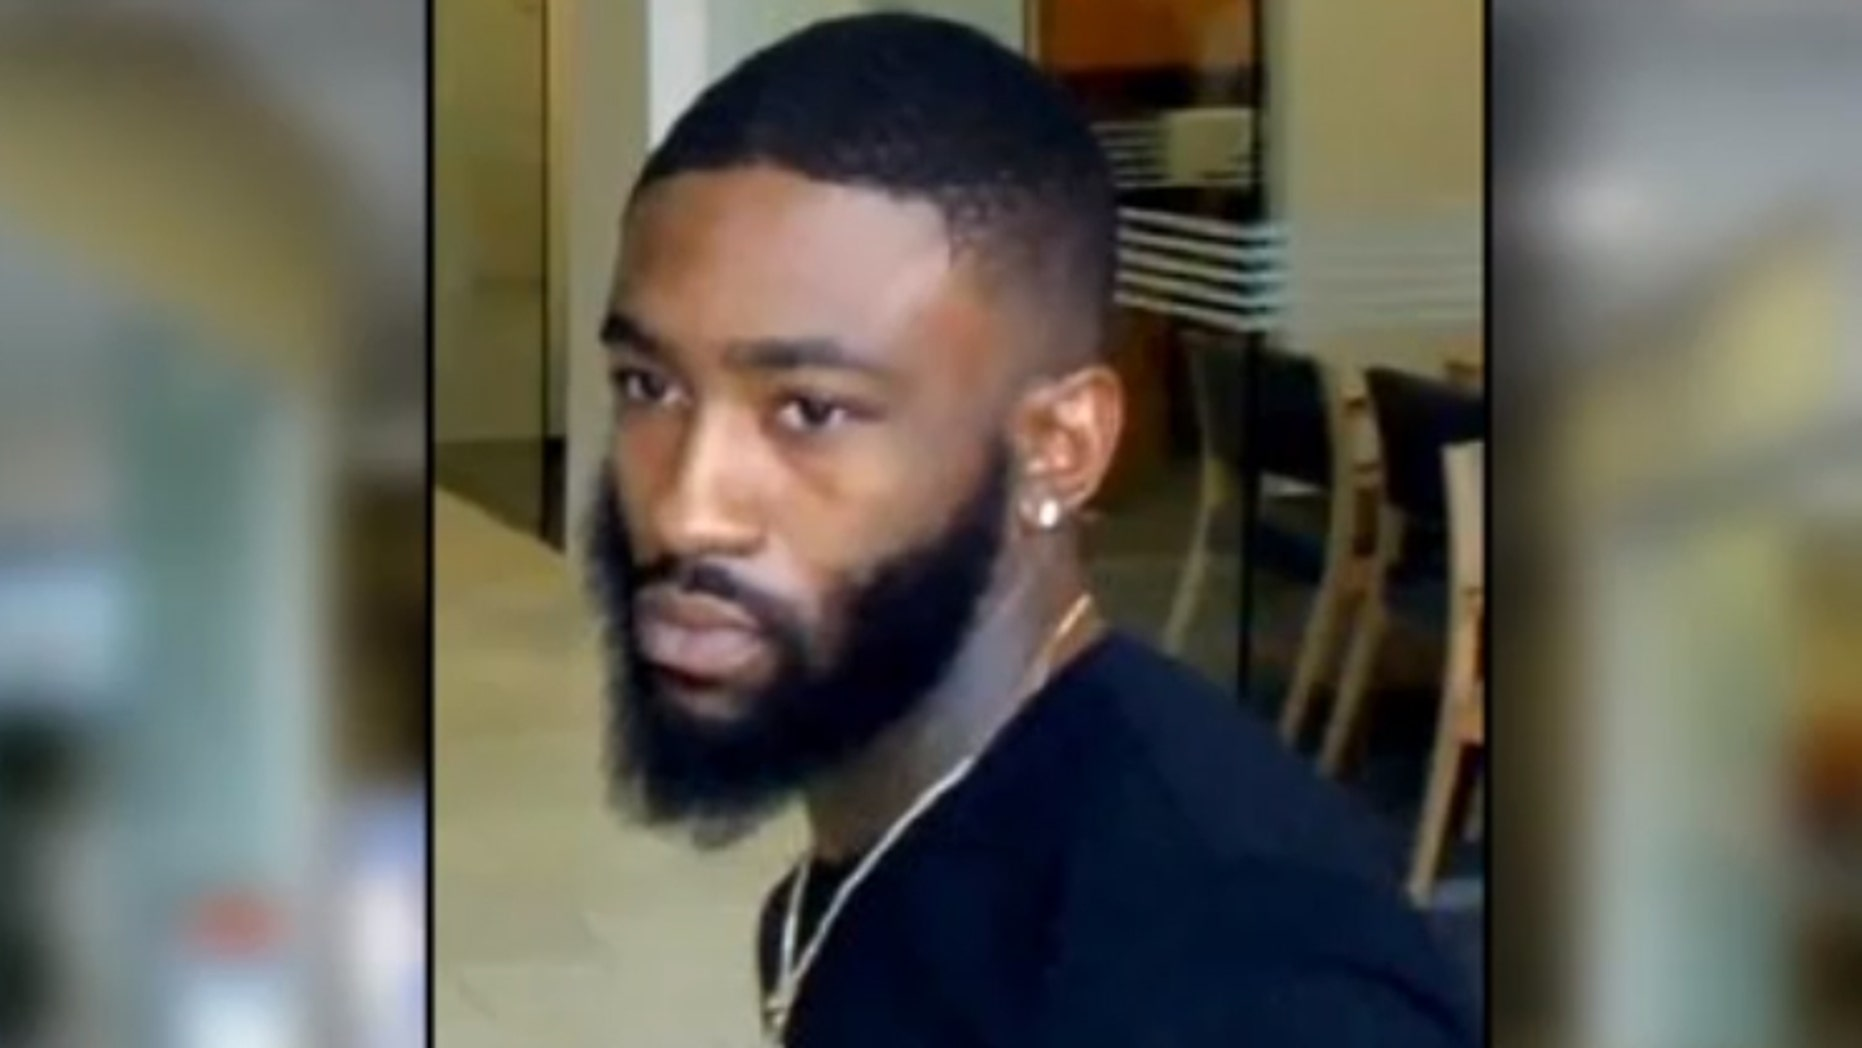 Police are looking for this man, who allegedly befriended a man with autism and stole $600 from him in Rockville, Maryland on Aug. 11, 2017.